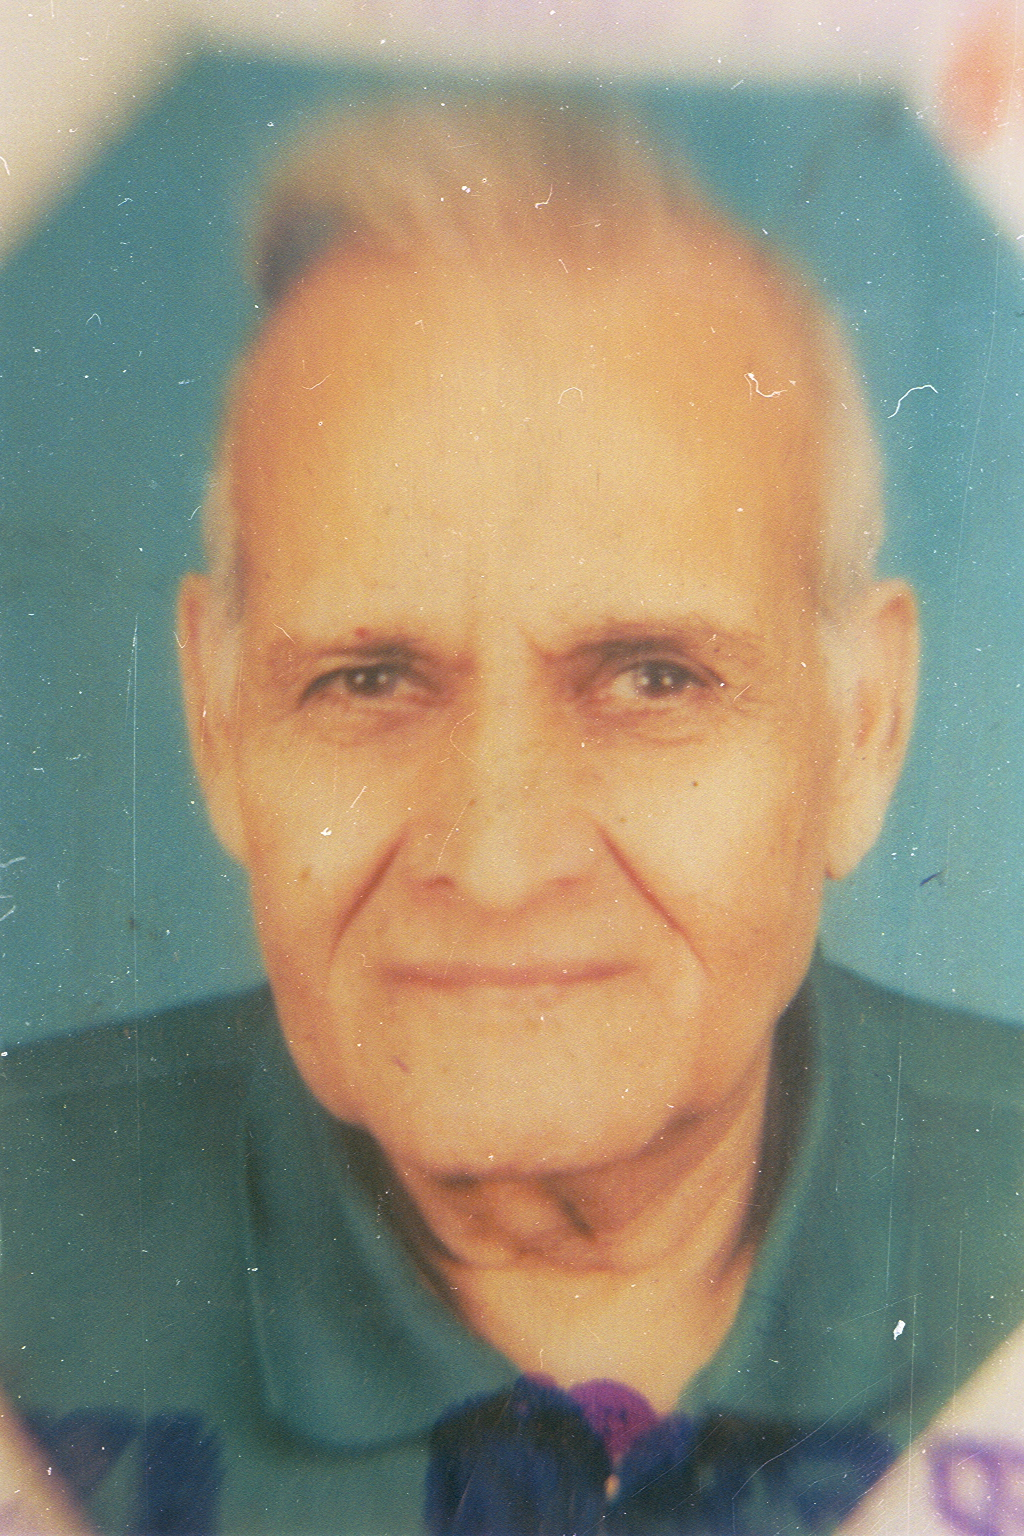 CLICK TO ENLARGE - My late, beloved father; Capt G.B.Chaturvedi,(1926 - 1998); Indian Airlines Co-Pilot, from 1957 to 1988, when he retired.